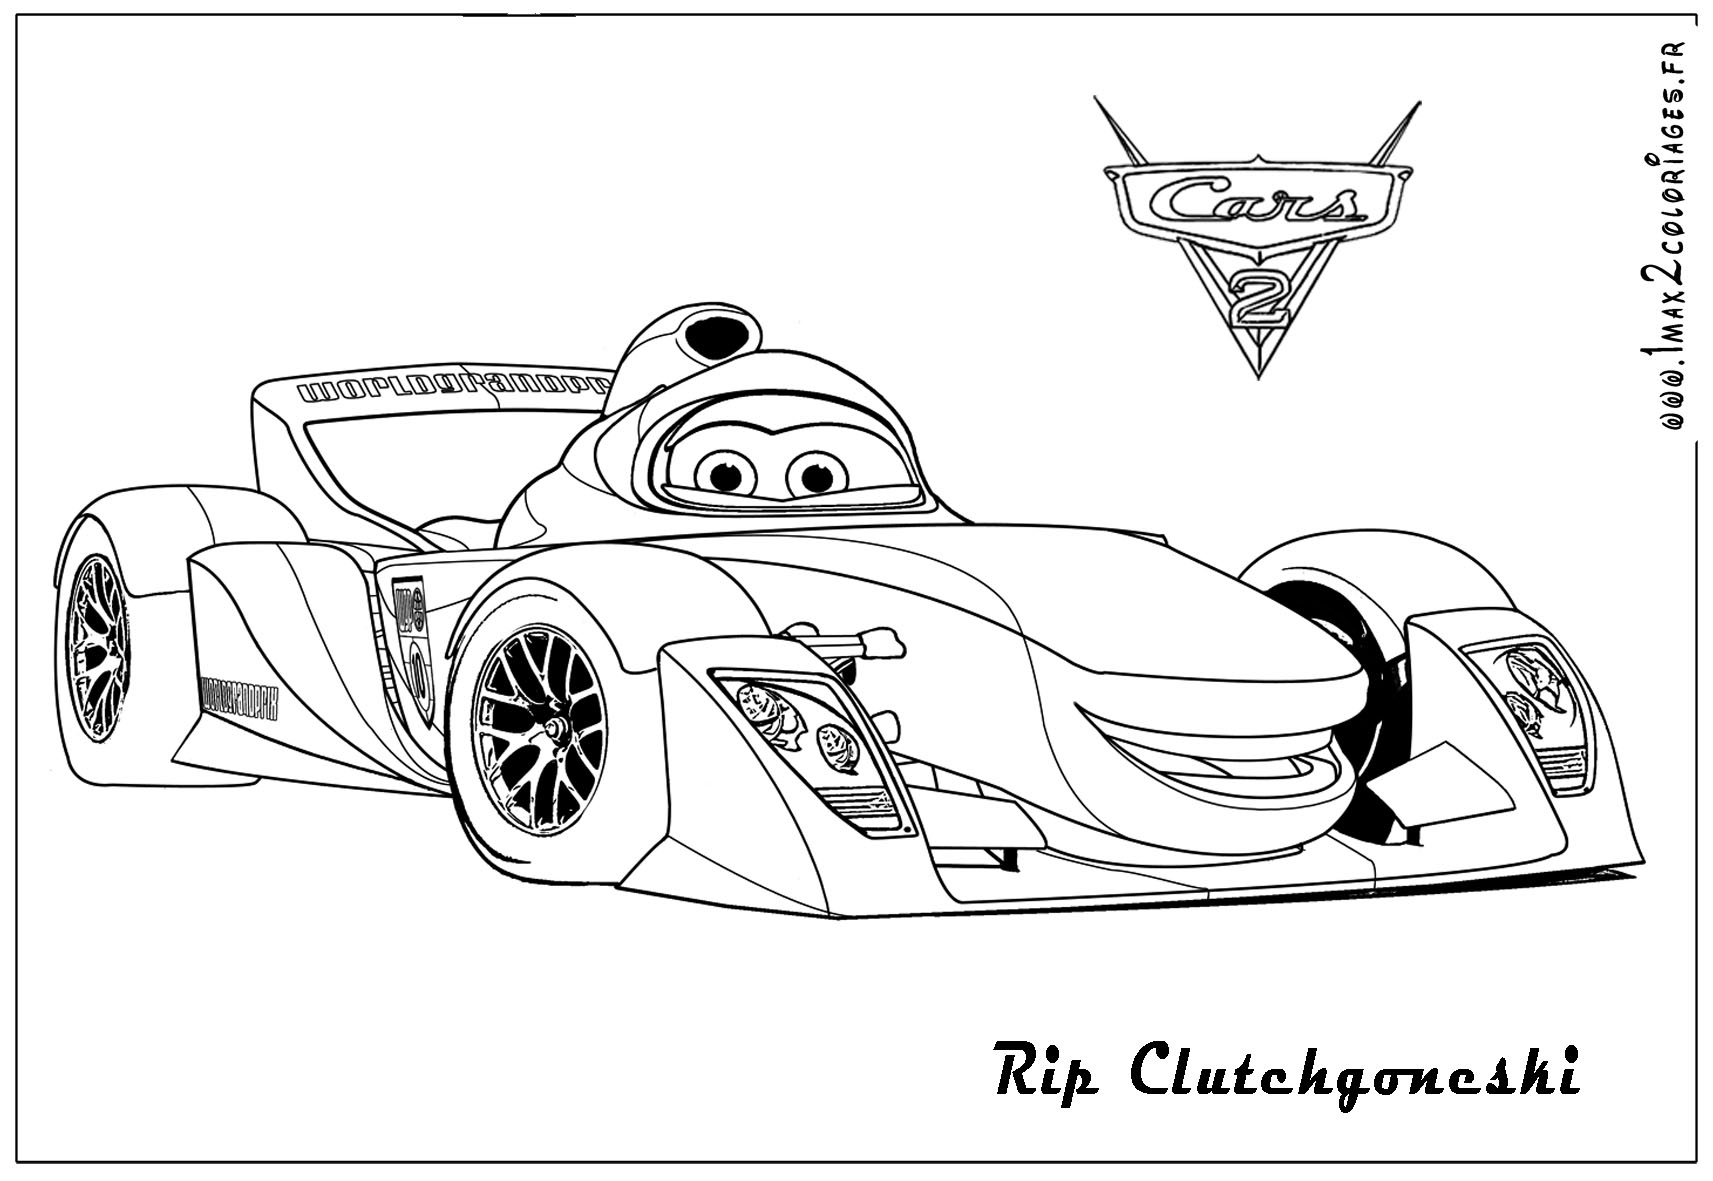 Coloring Pages Cars 2 5 Printable Of Cars 2 Coloring Pages with Cars 2 Coloring Pages with Cars 2 Gallery